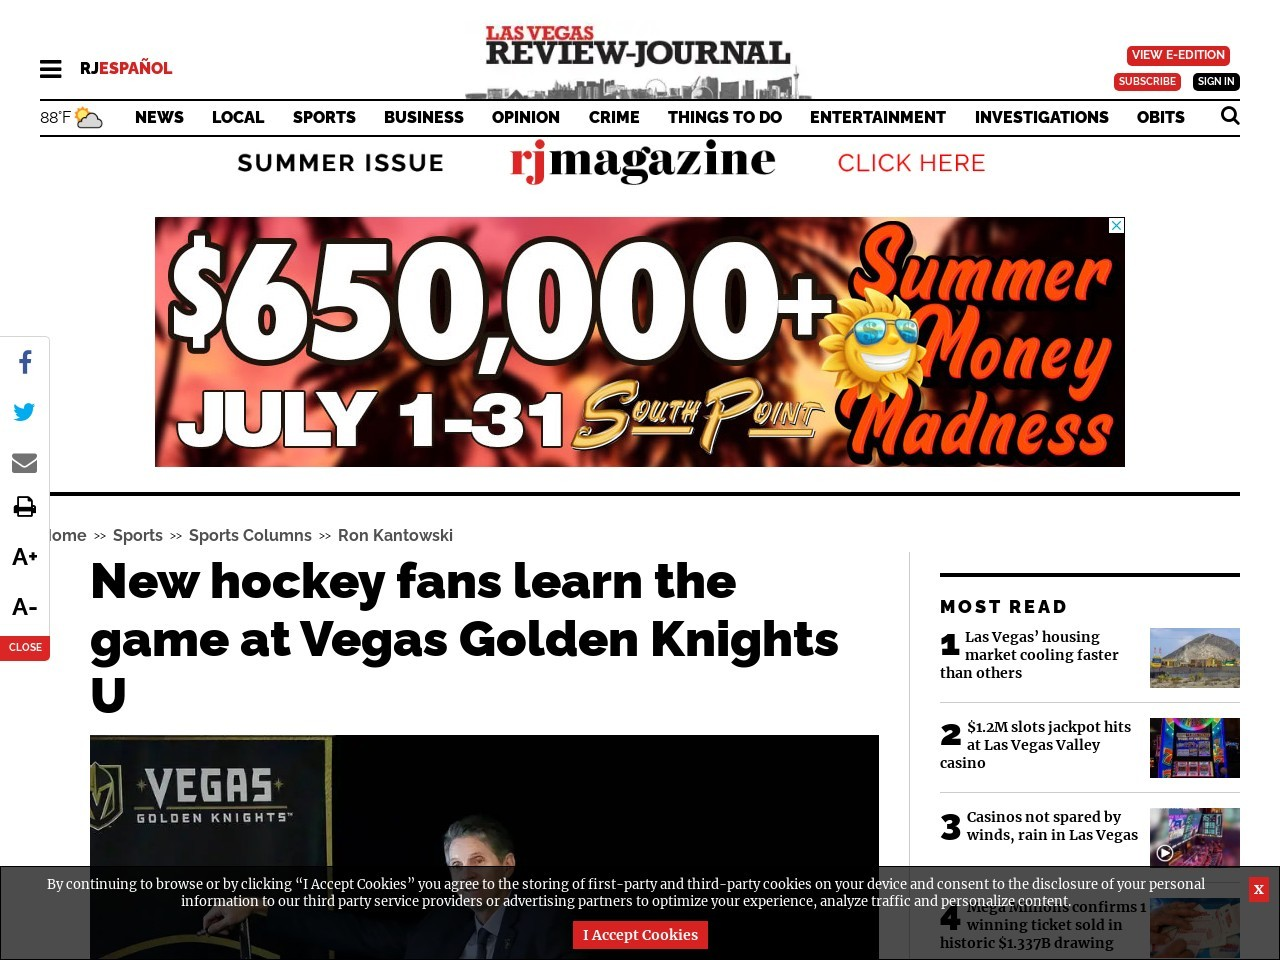 New hockey fans learn the game at Vegas Golden Knights U